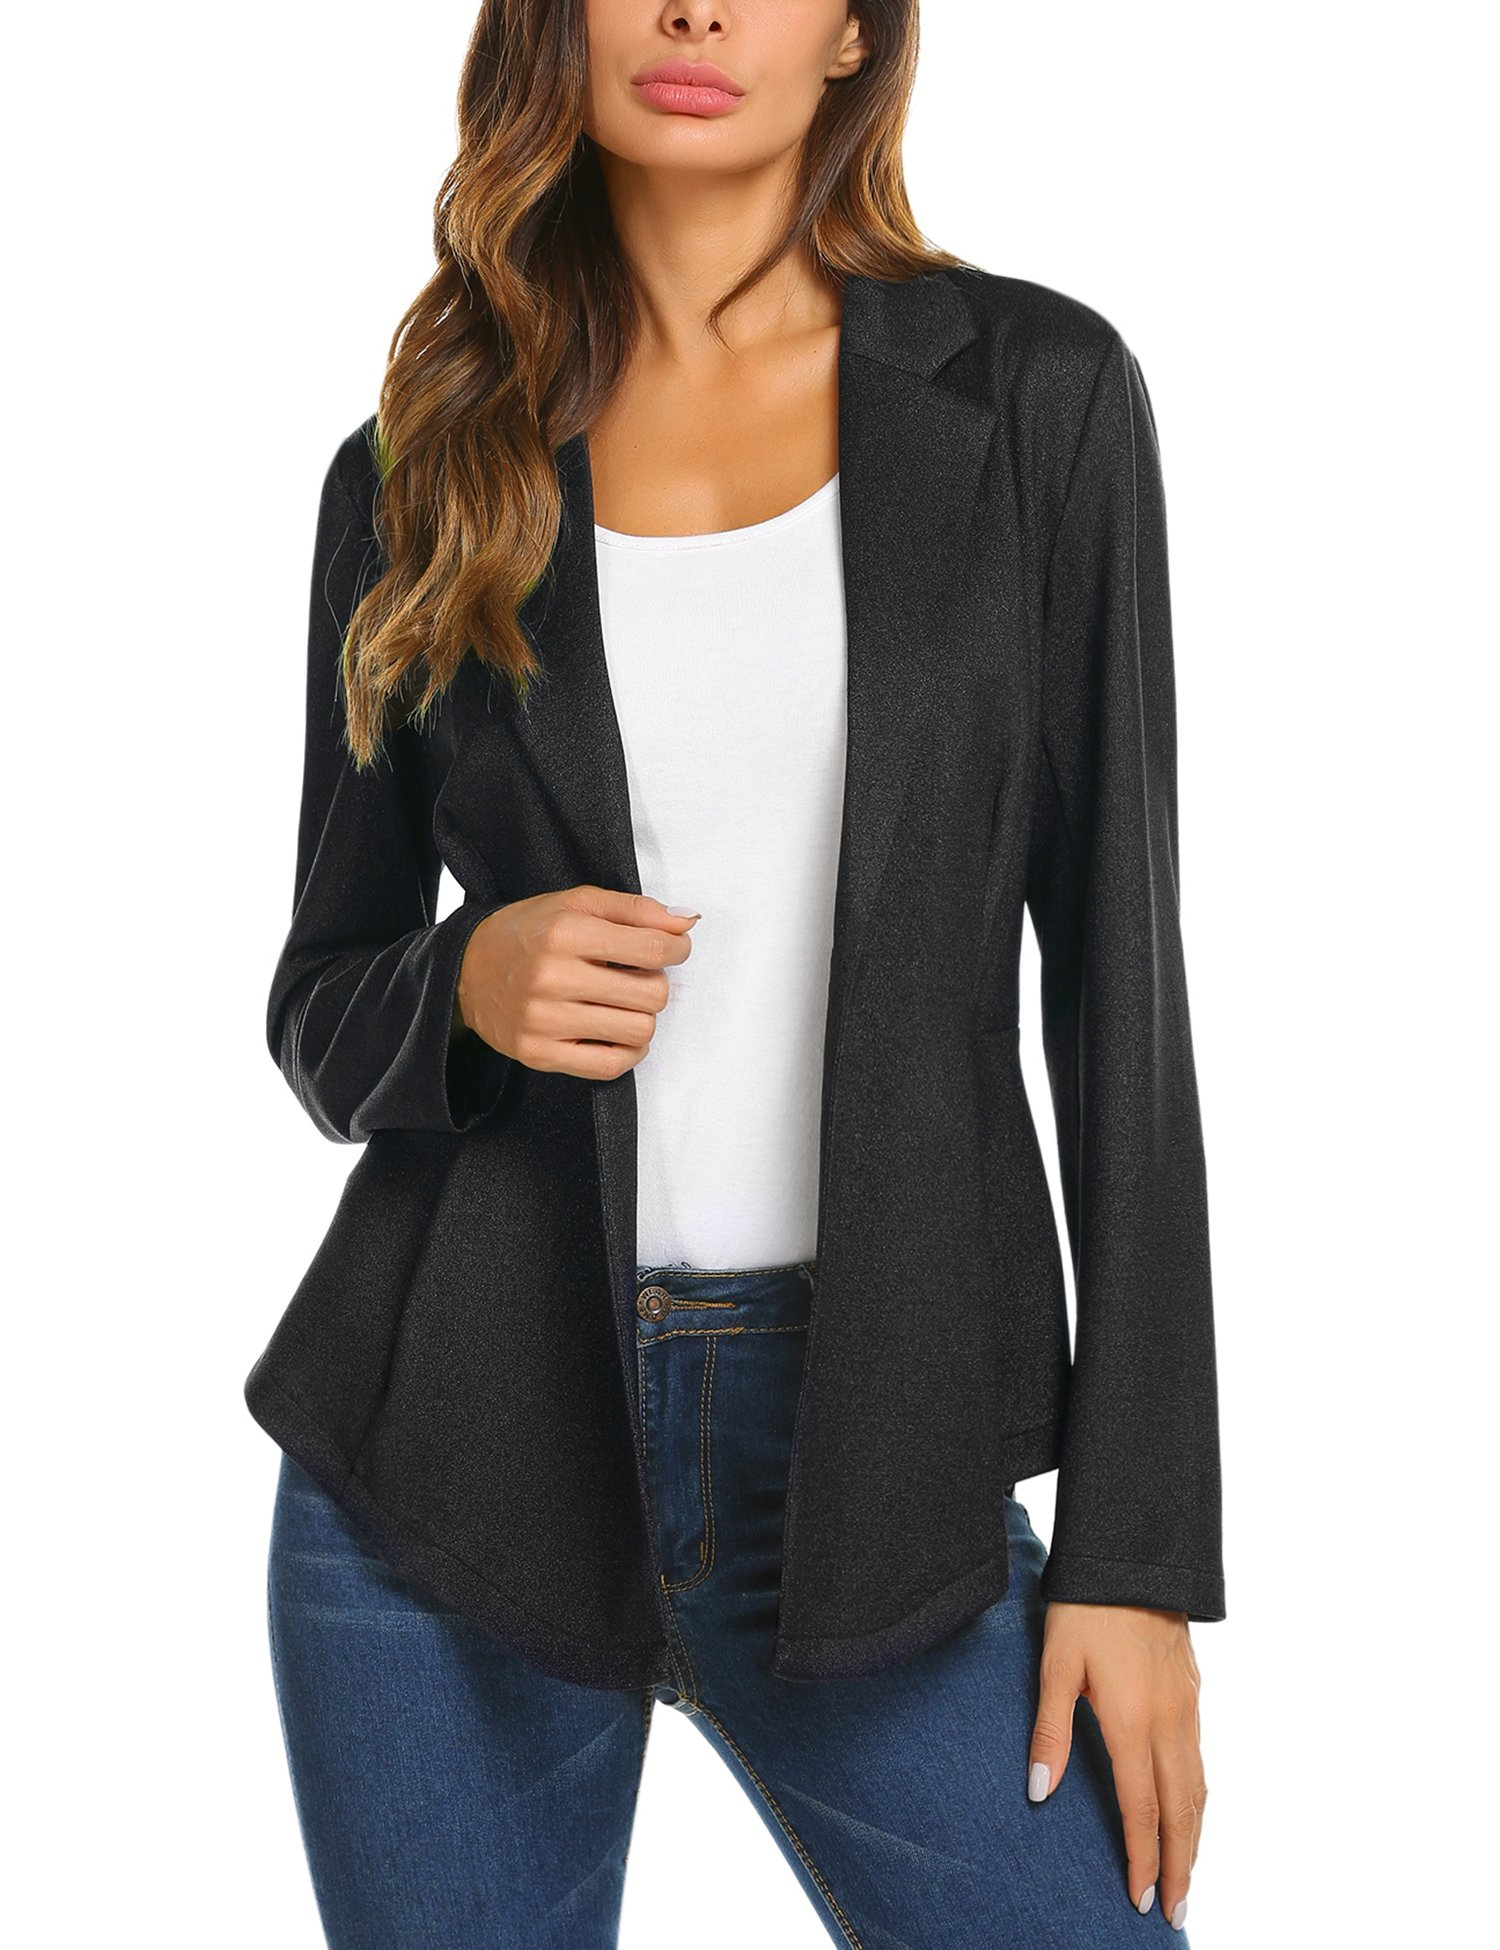 ACEVOG Women's Casual Formal Long Sleeve One Button Business Office Work Blazer A Black S by ACEVOG